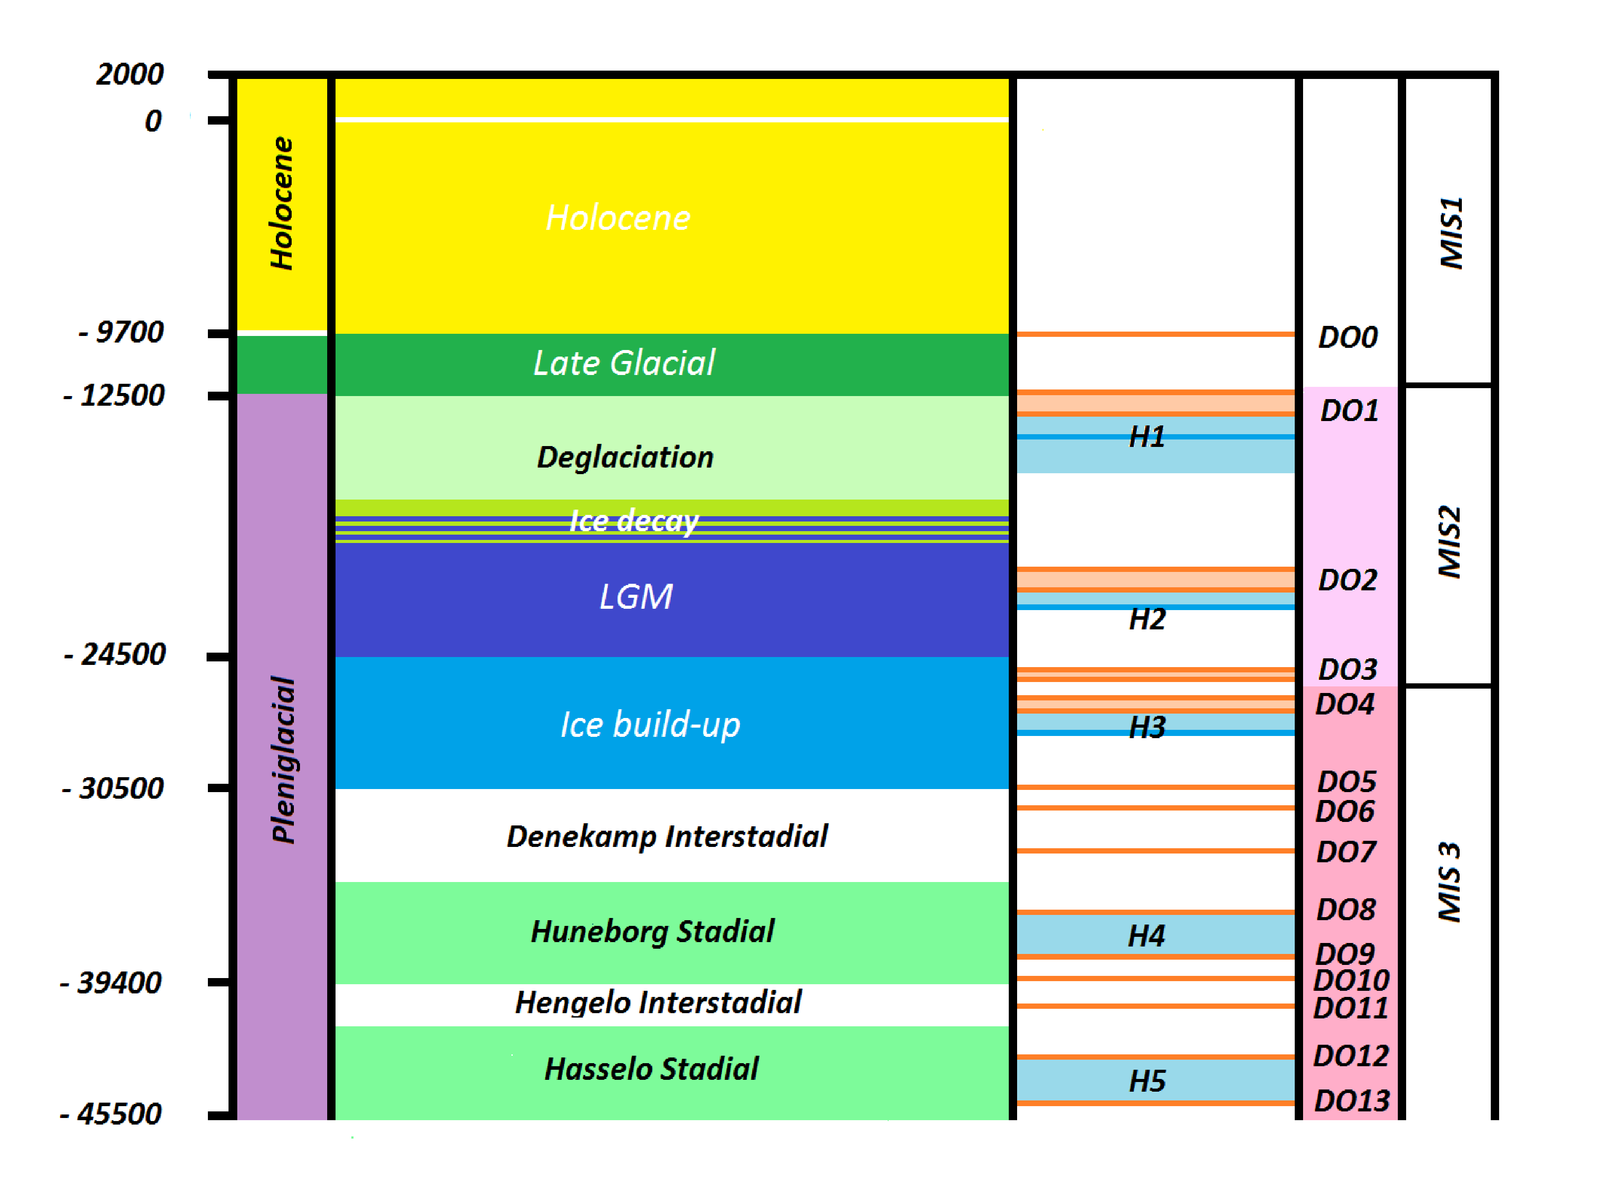 Chart showing the past 45,000 years or so, and the correlation between Heinrich and DO events. Heinrich events H1 to H5 are marked in blue, DO events 0 to 13 in orange-red. LGM: Last Glacial Maximum, MIS: Marine Isotope Stage. Credit: wikicommons.